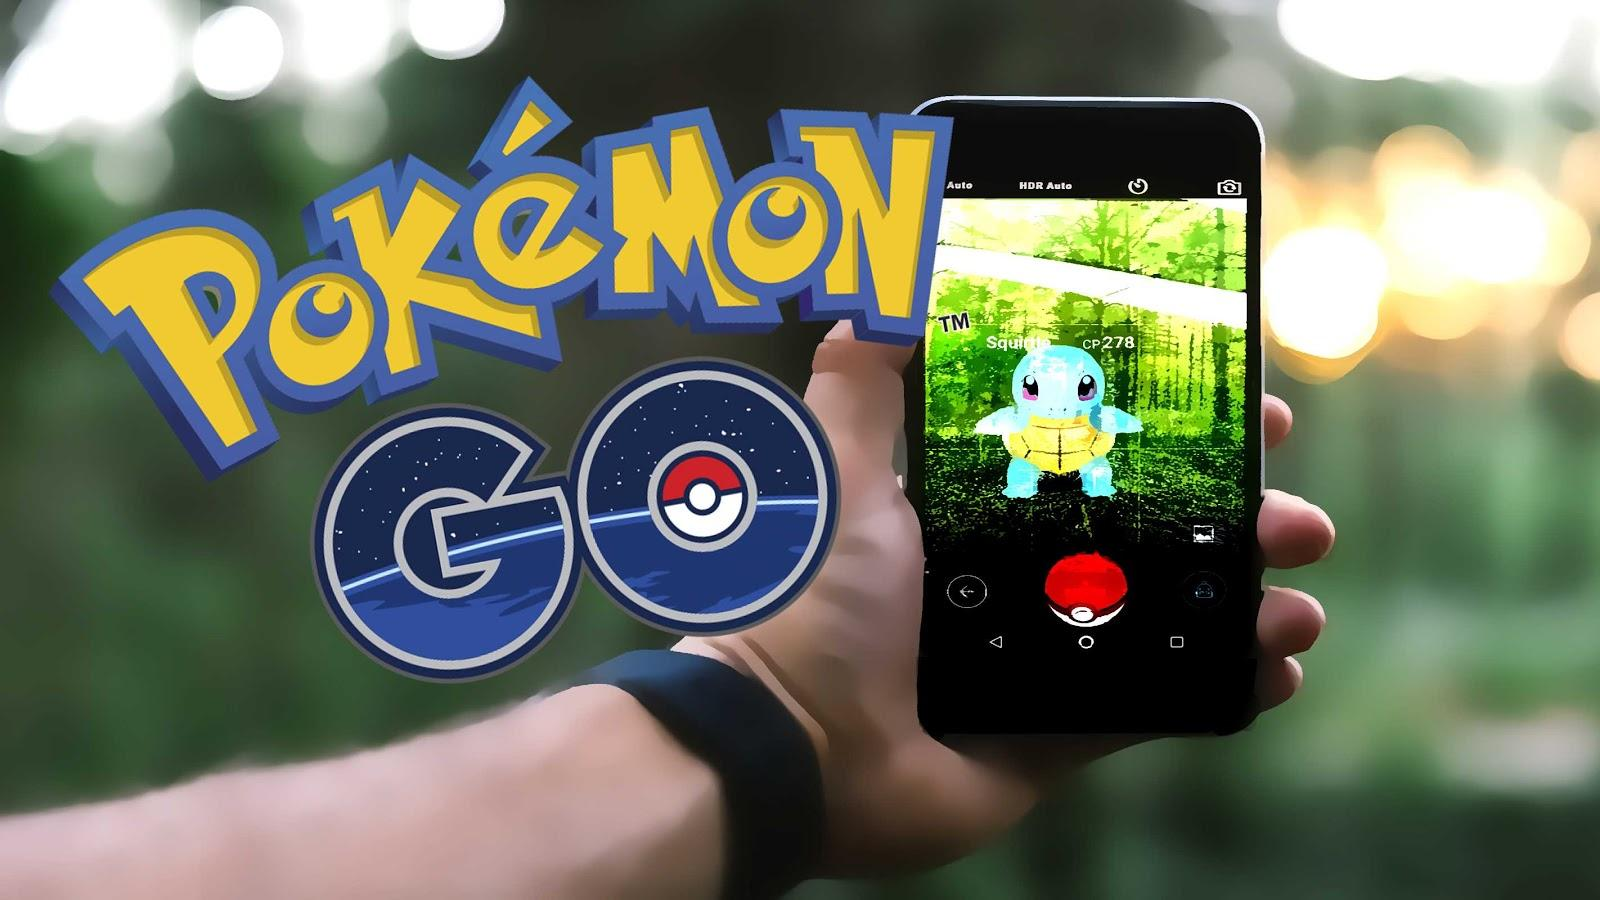 Pokémon Go pros and cons: is it a good game? - netivist